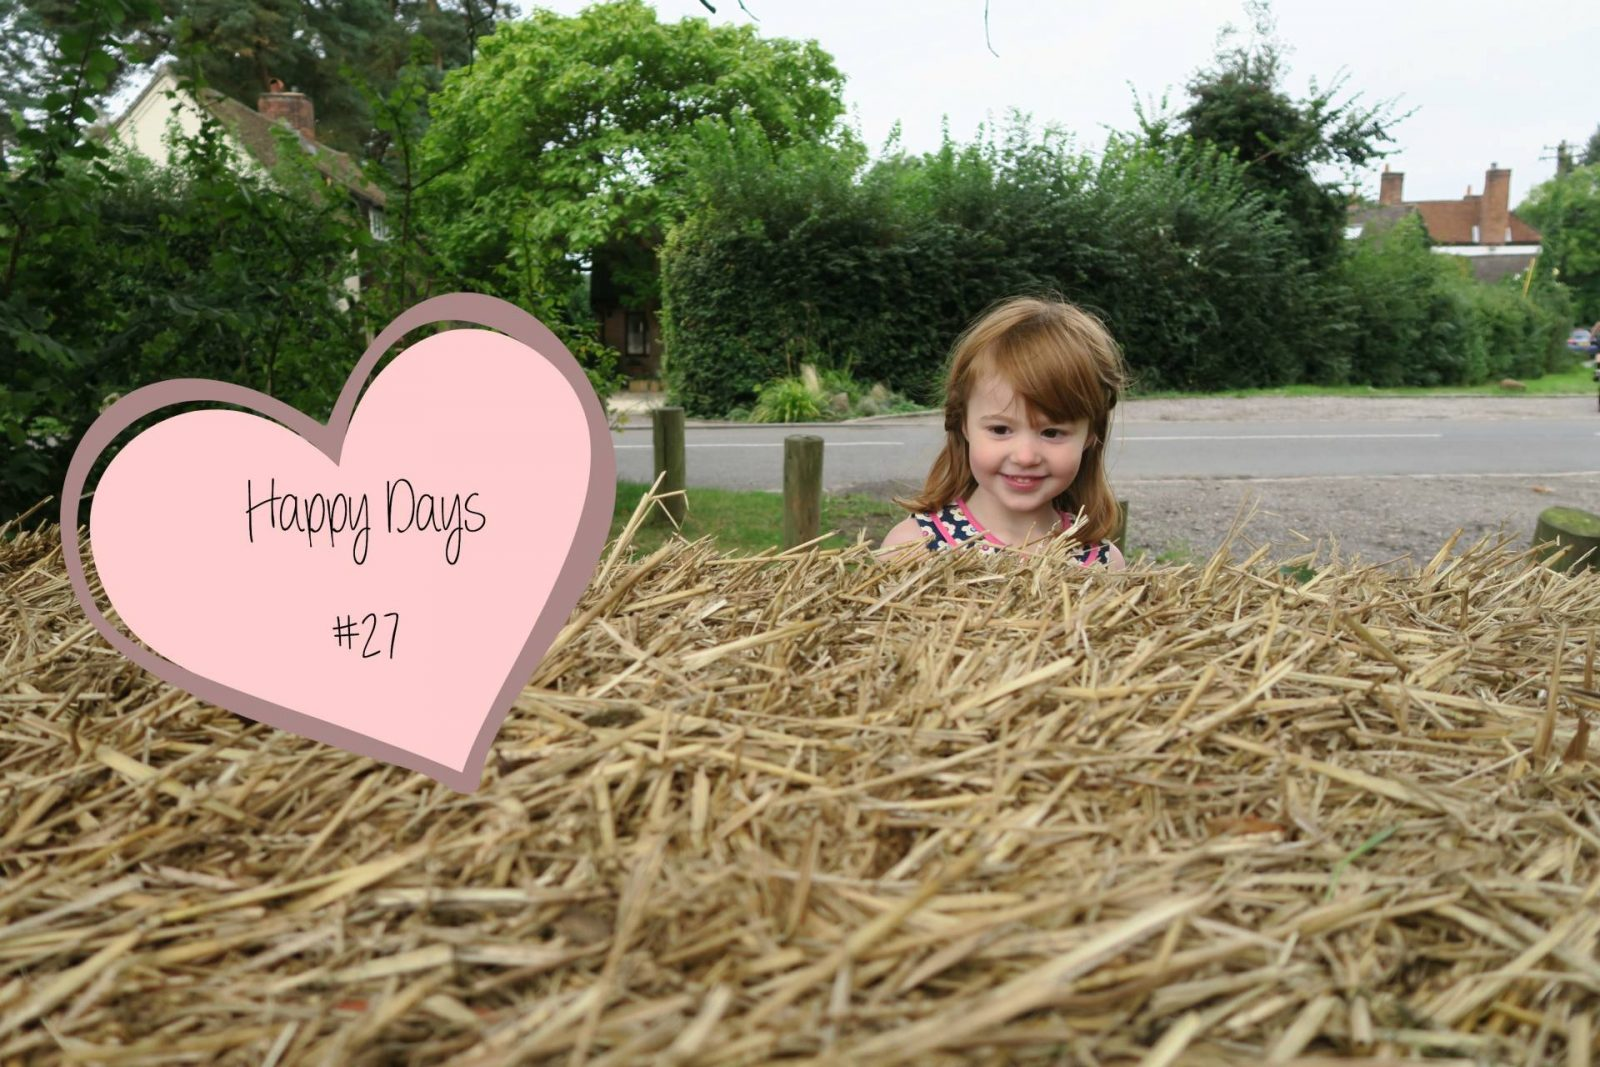 Parties, Play Dates and Baking…Happy Days #27